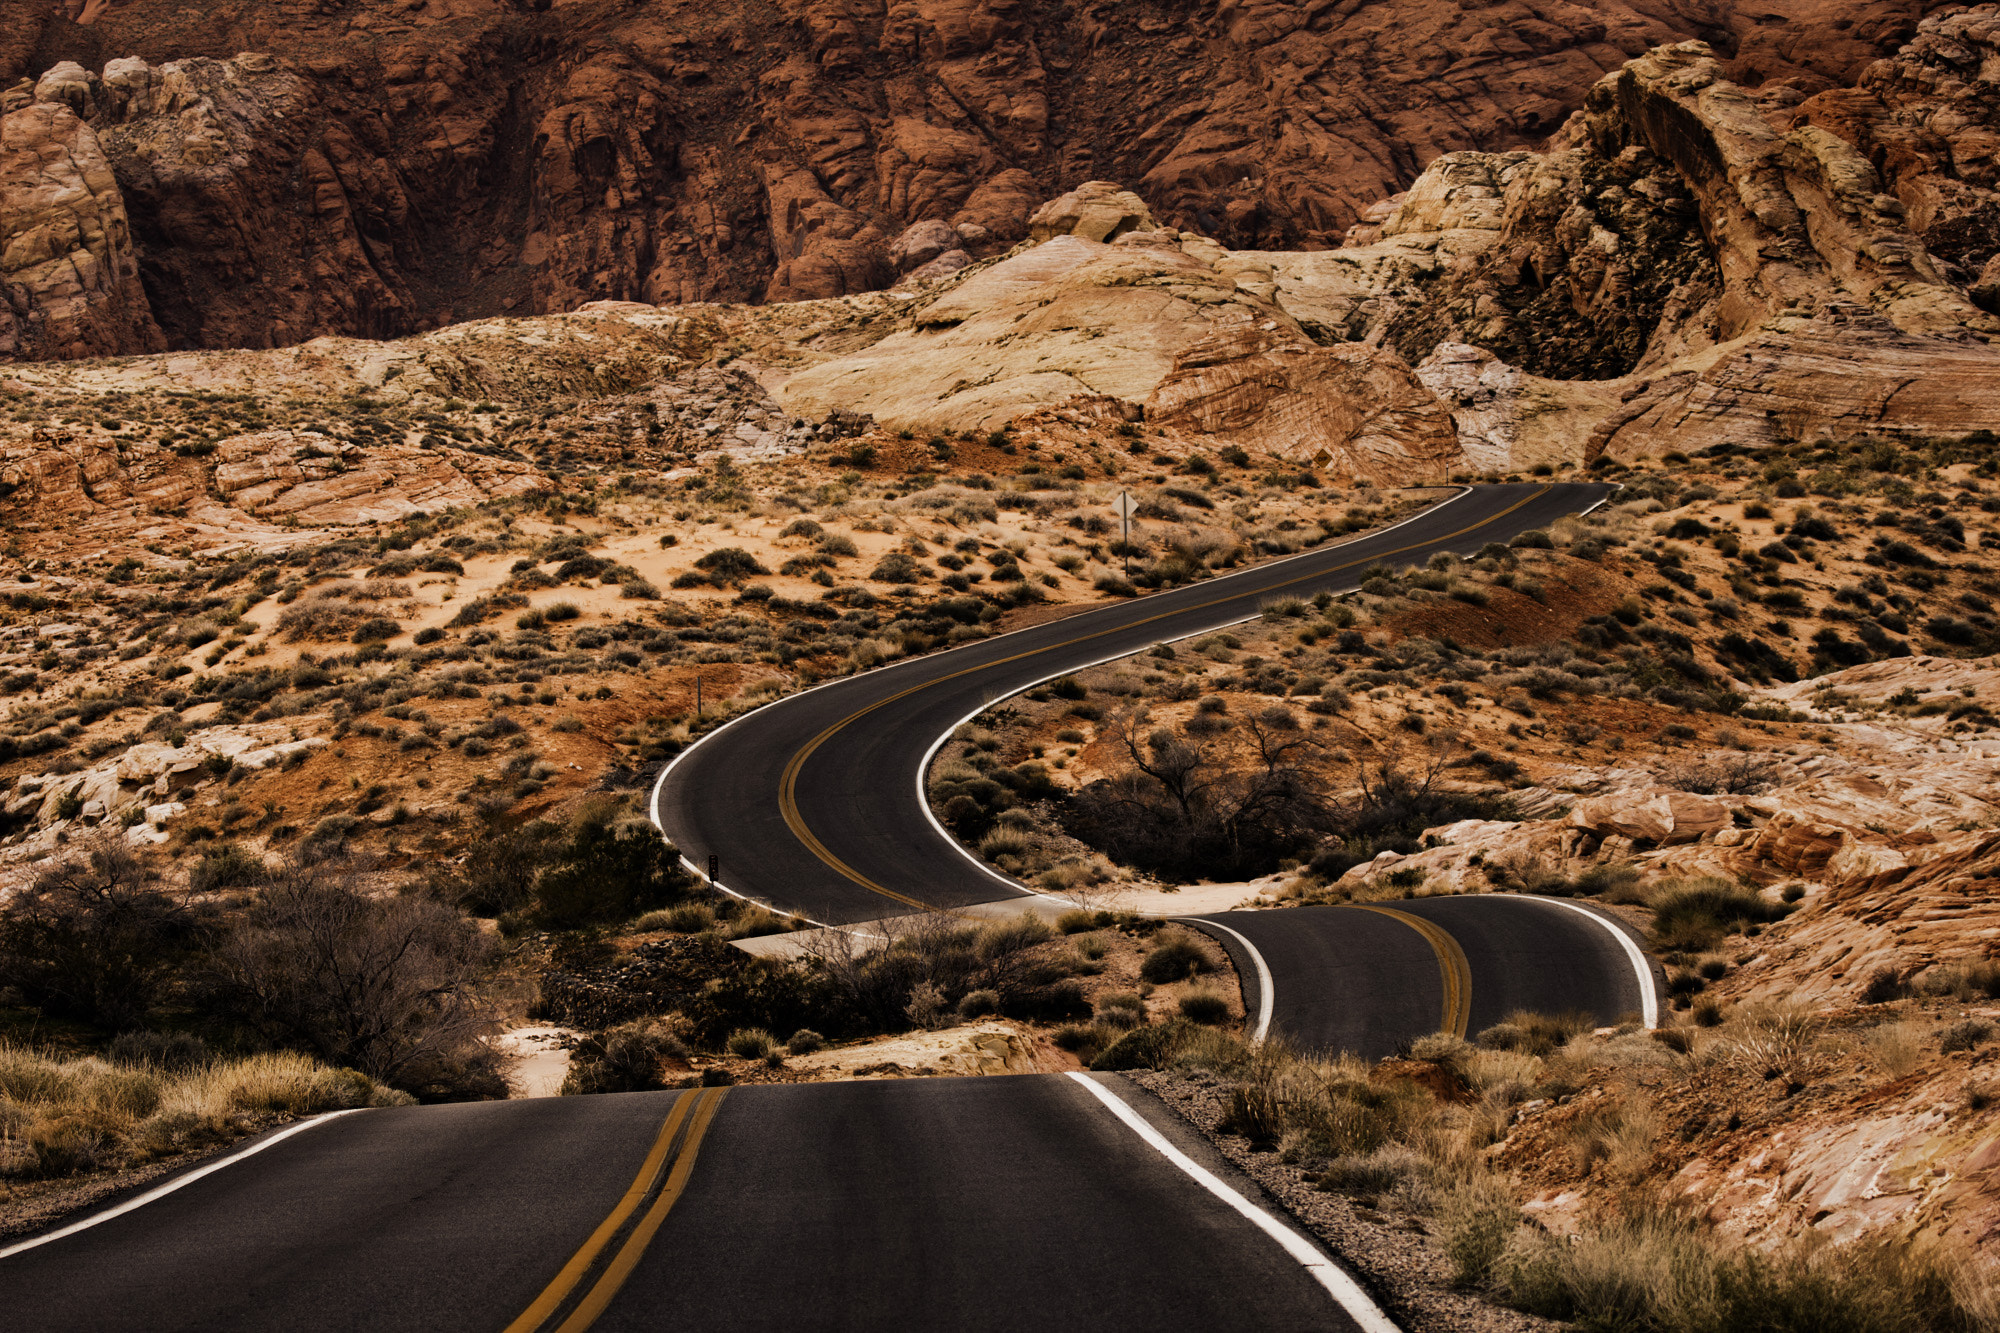 Photograph The Road by Nathan Oxley on 500px